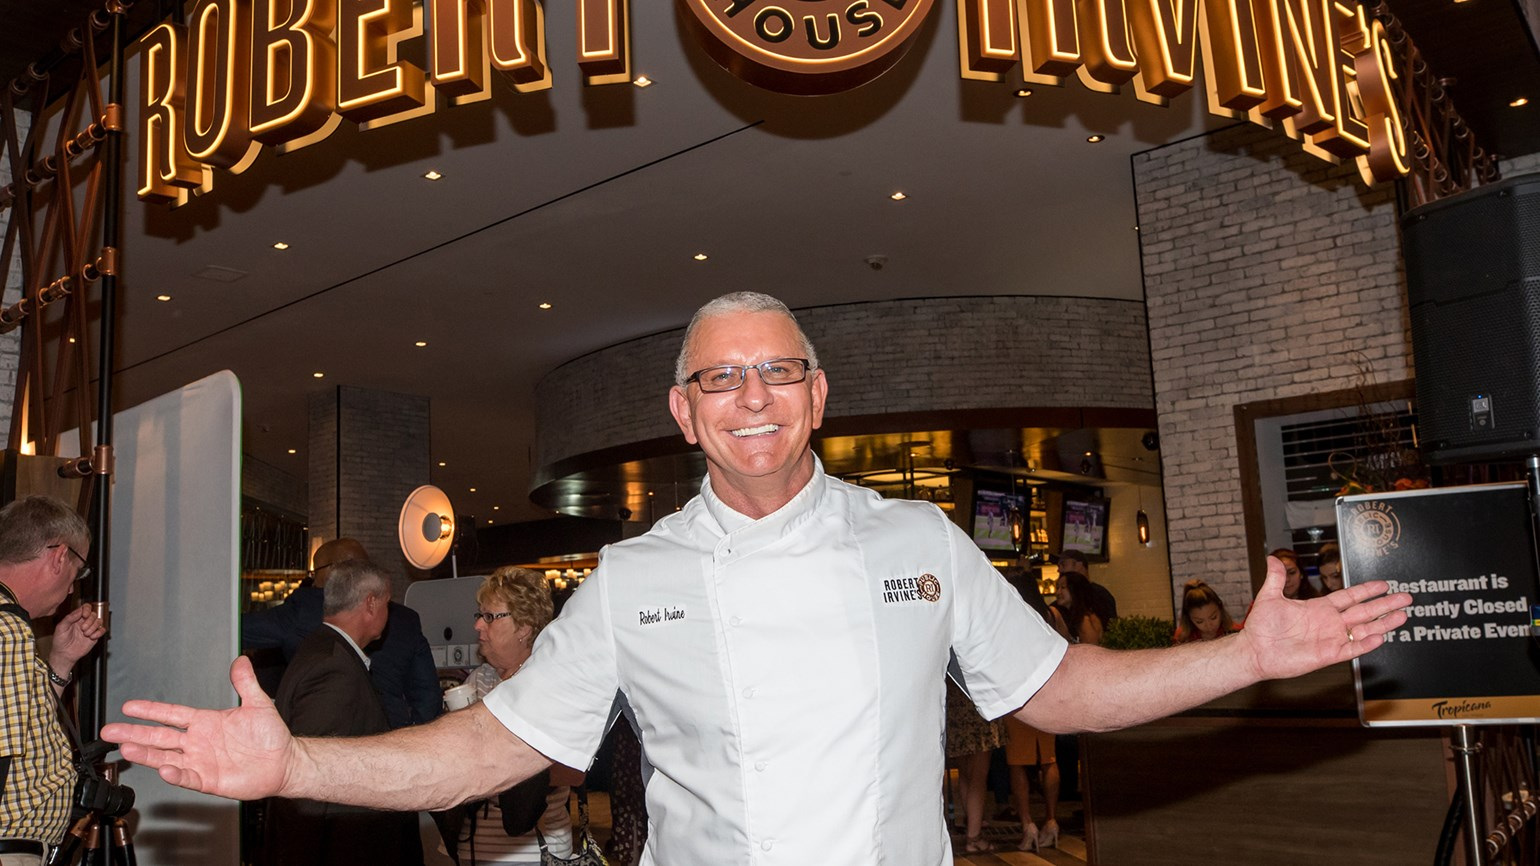 With Public House, Robert Irvine strives for laid-back, local vibe